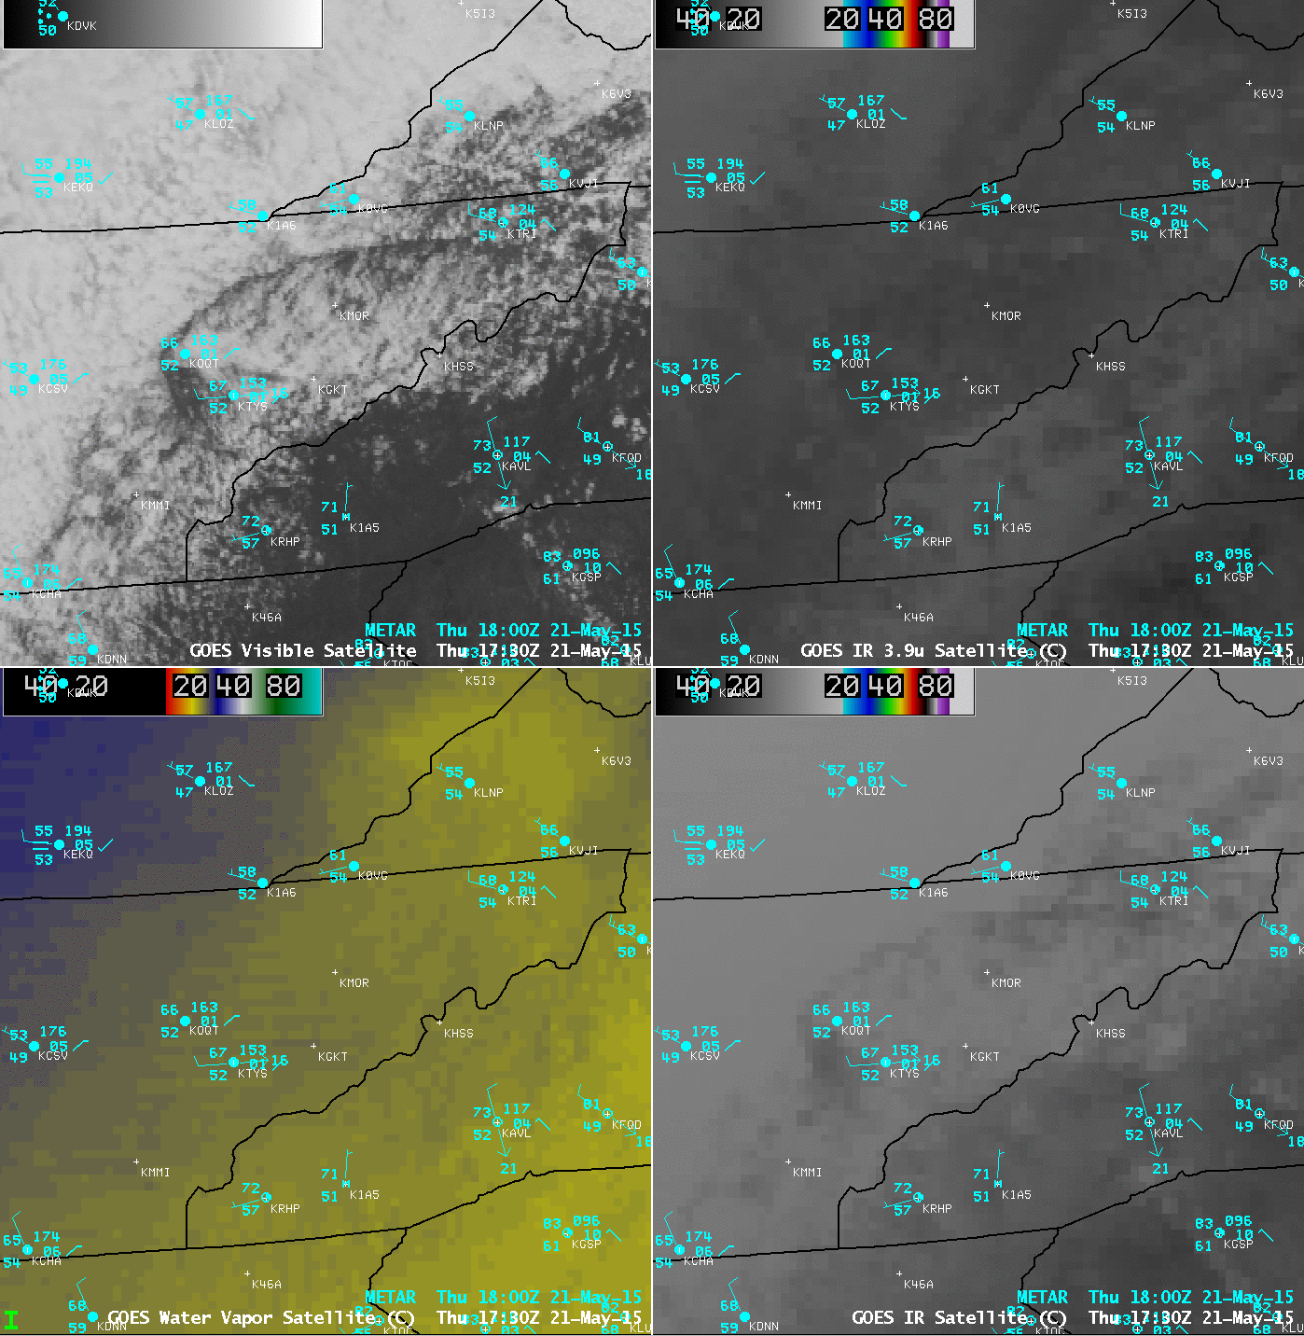 GOES-13 (GOES-East) visible, 3.9 µm shortwave IR, 6.5 µm, and 10.7 µm IR images [click to play animation]